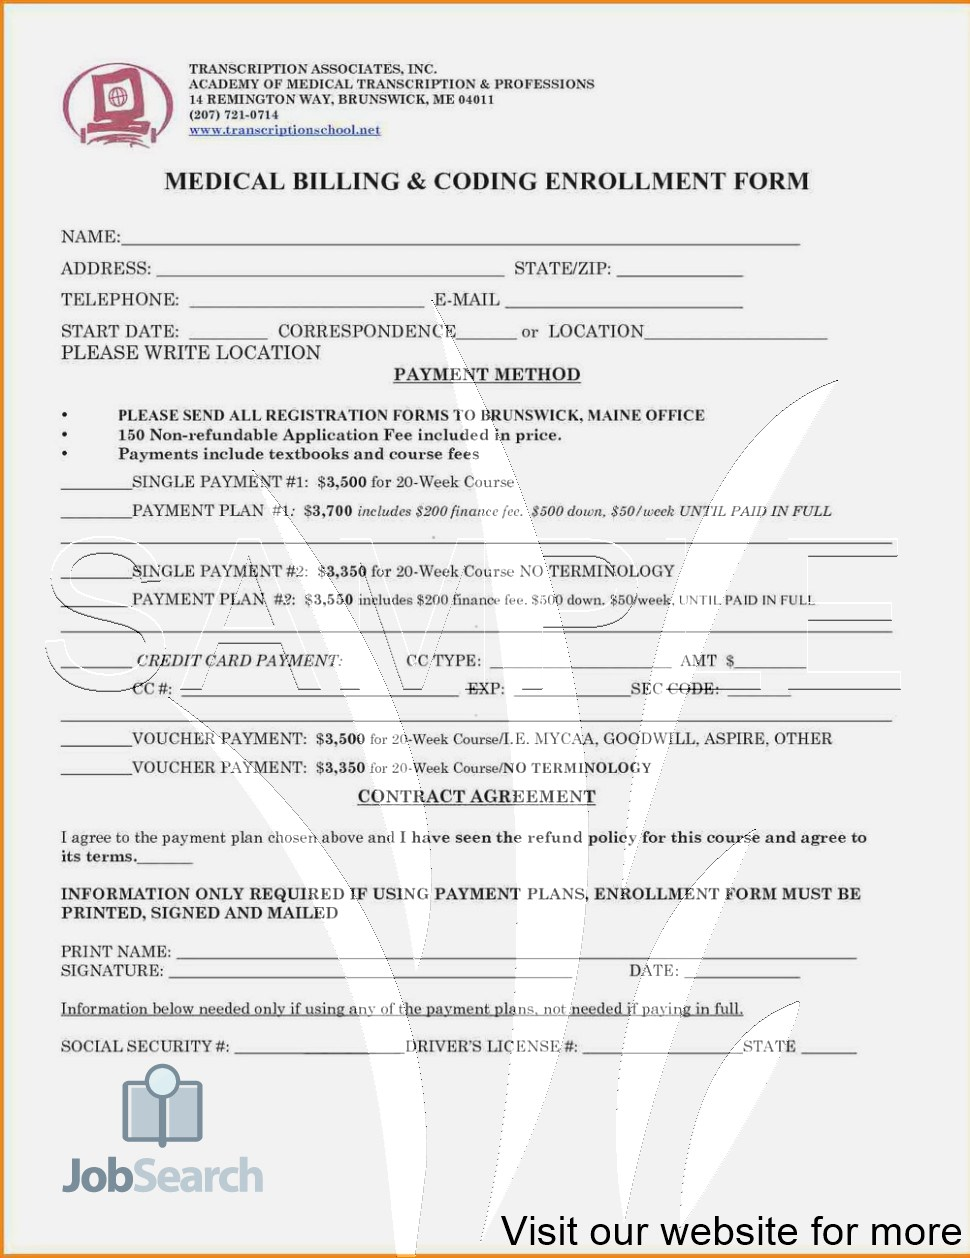 Resume for Medical Coder Fresher in 2020 (With images